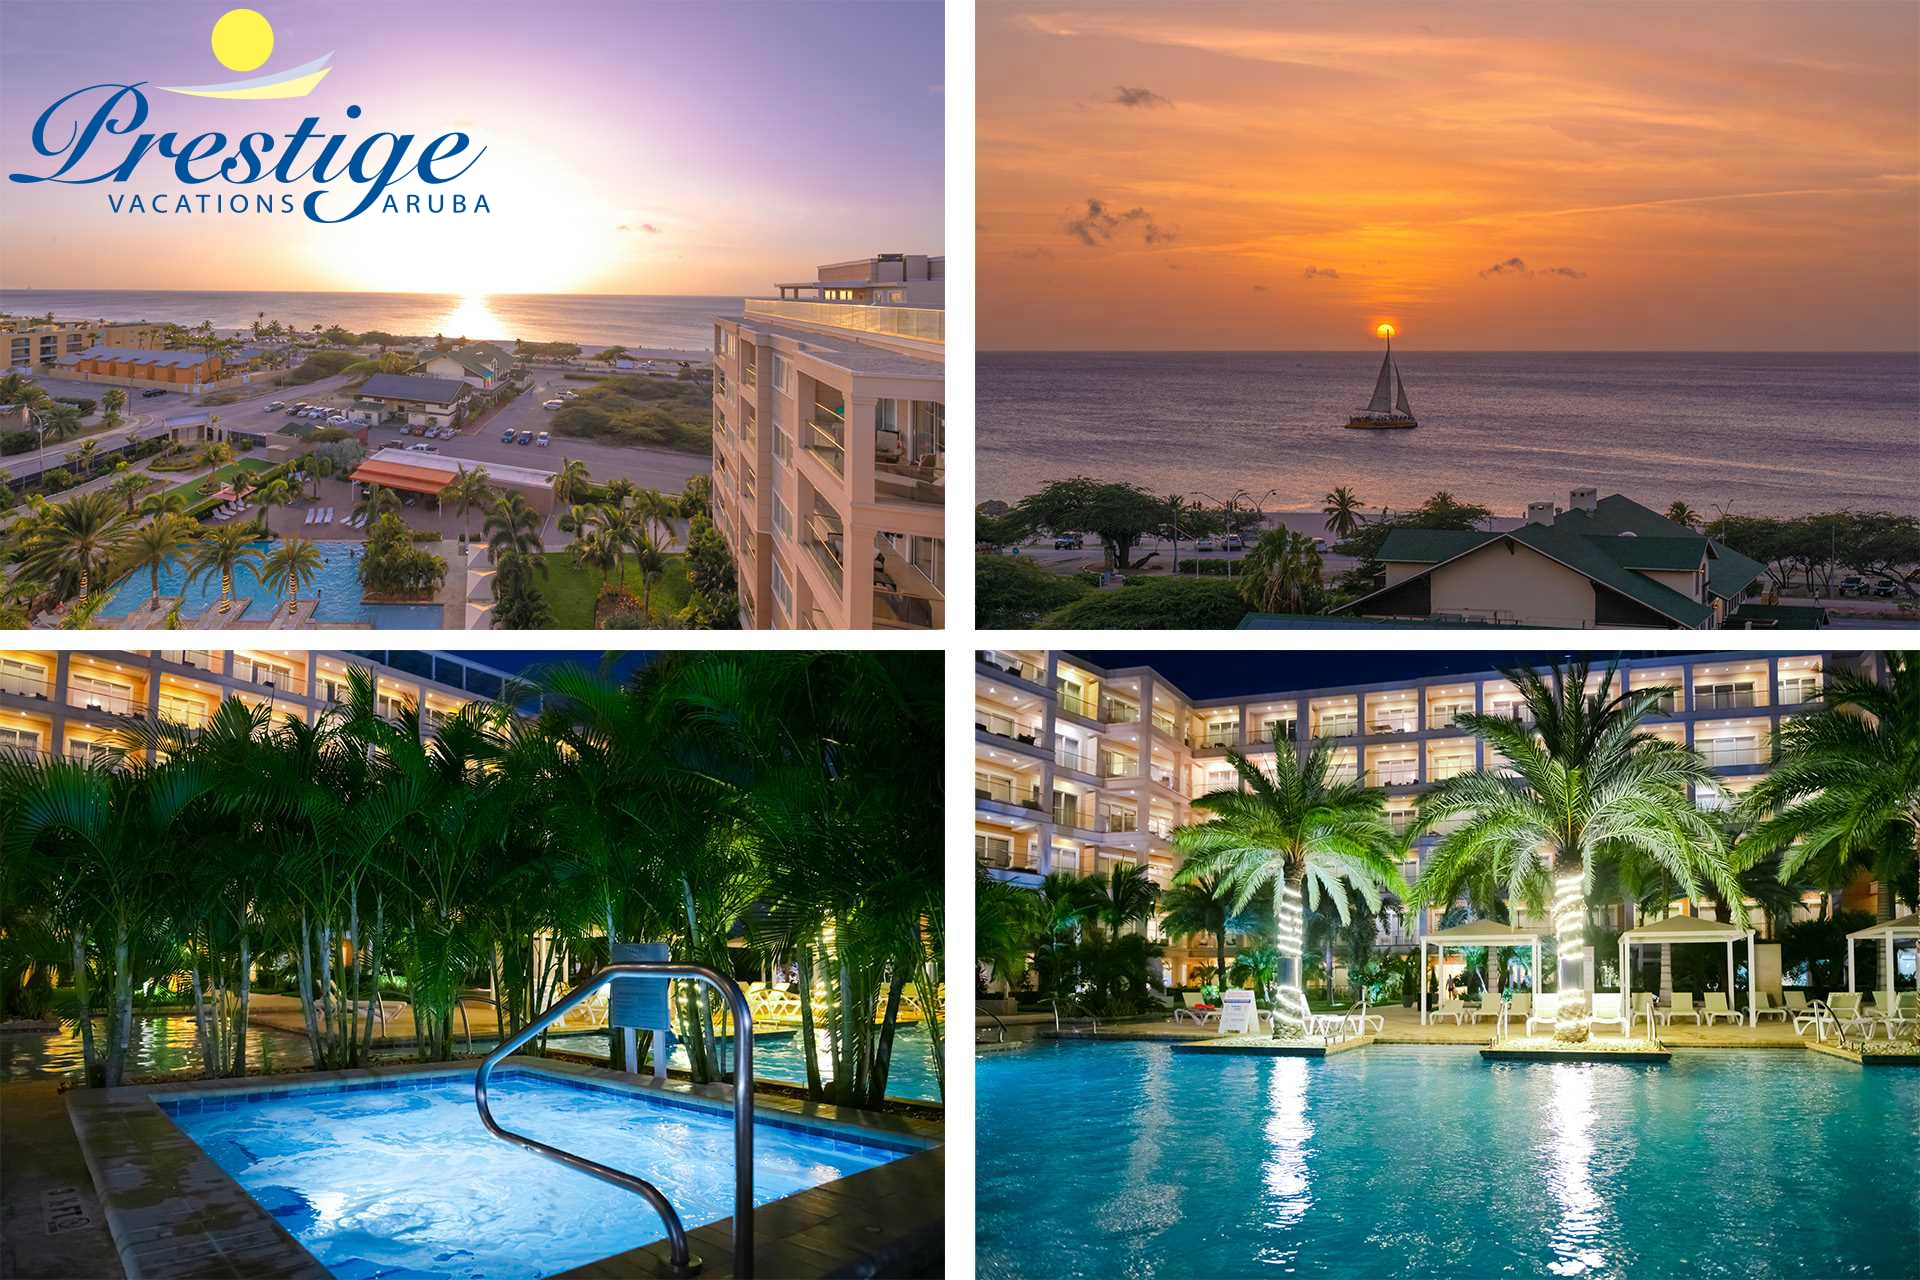 Enjoy the resort at night and some amazing sunsets from your balcony